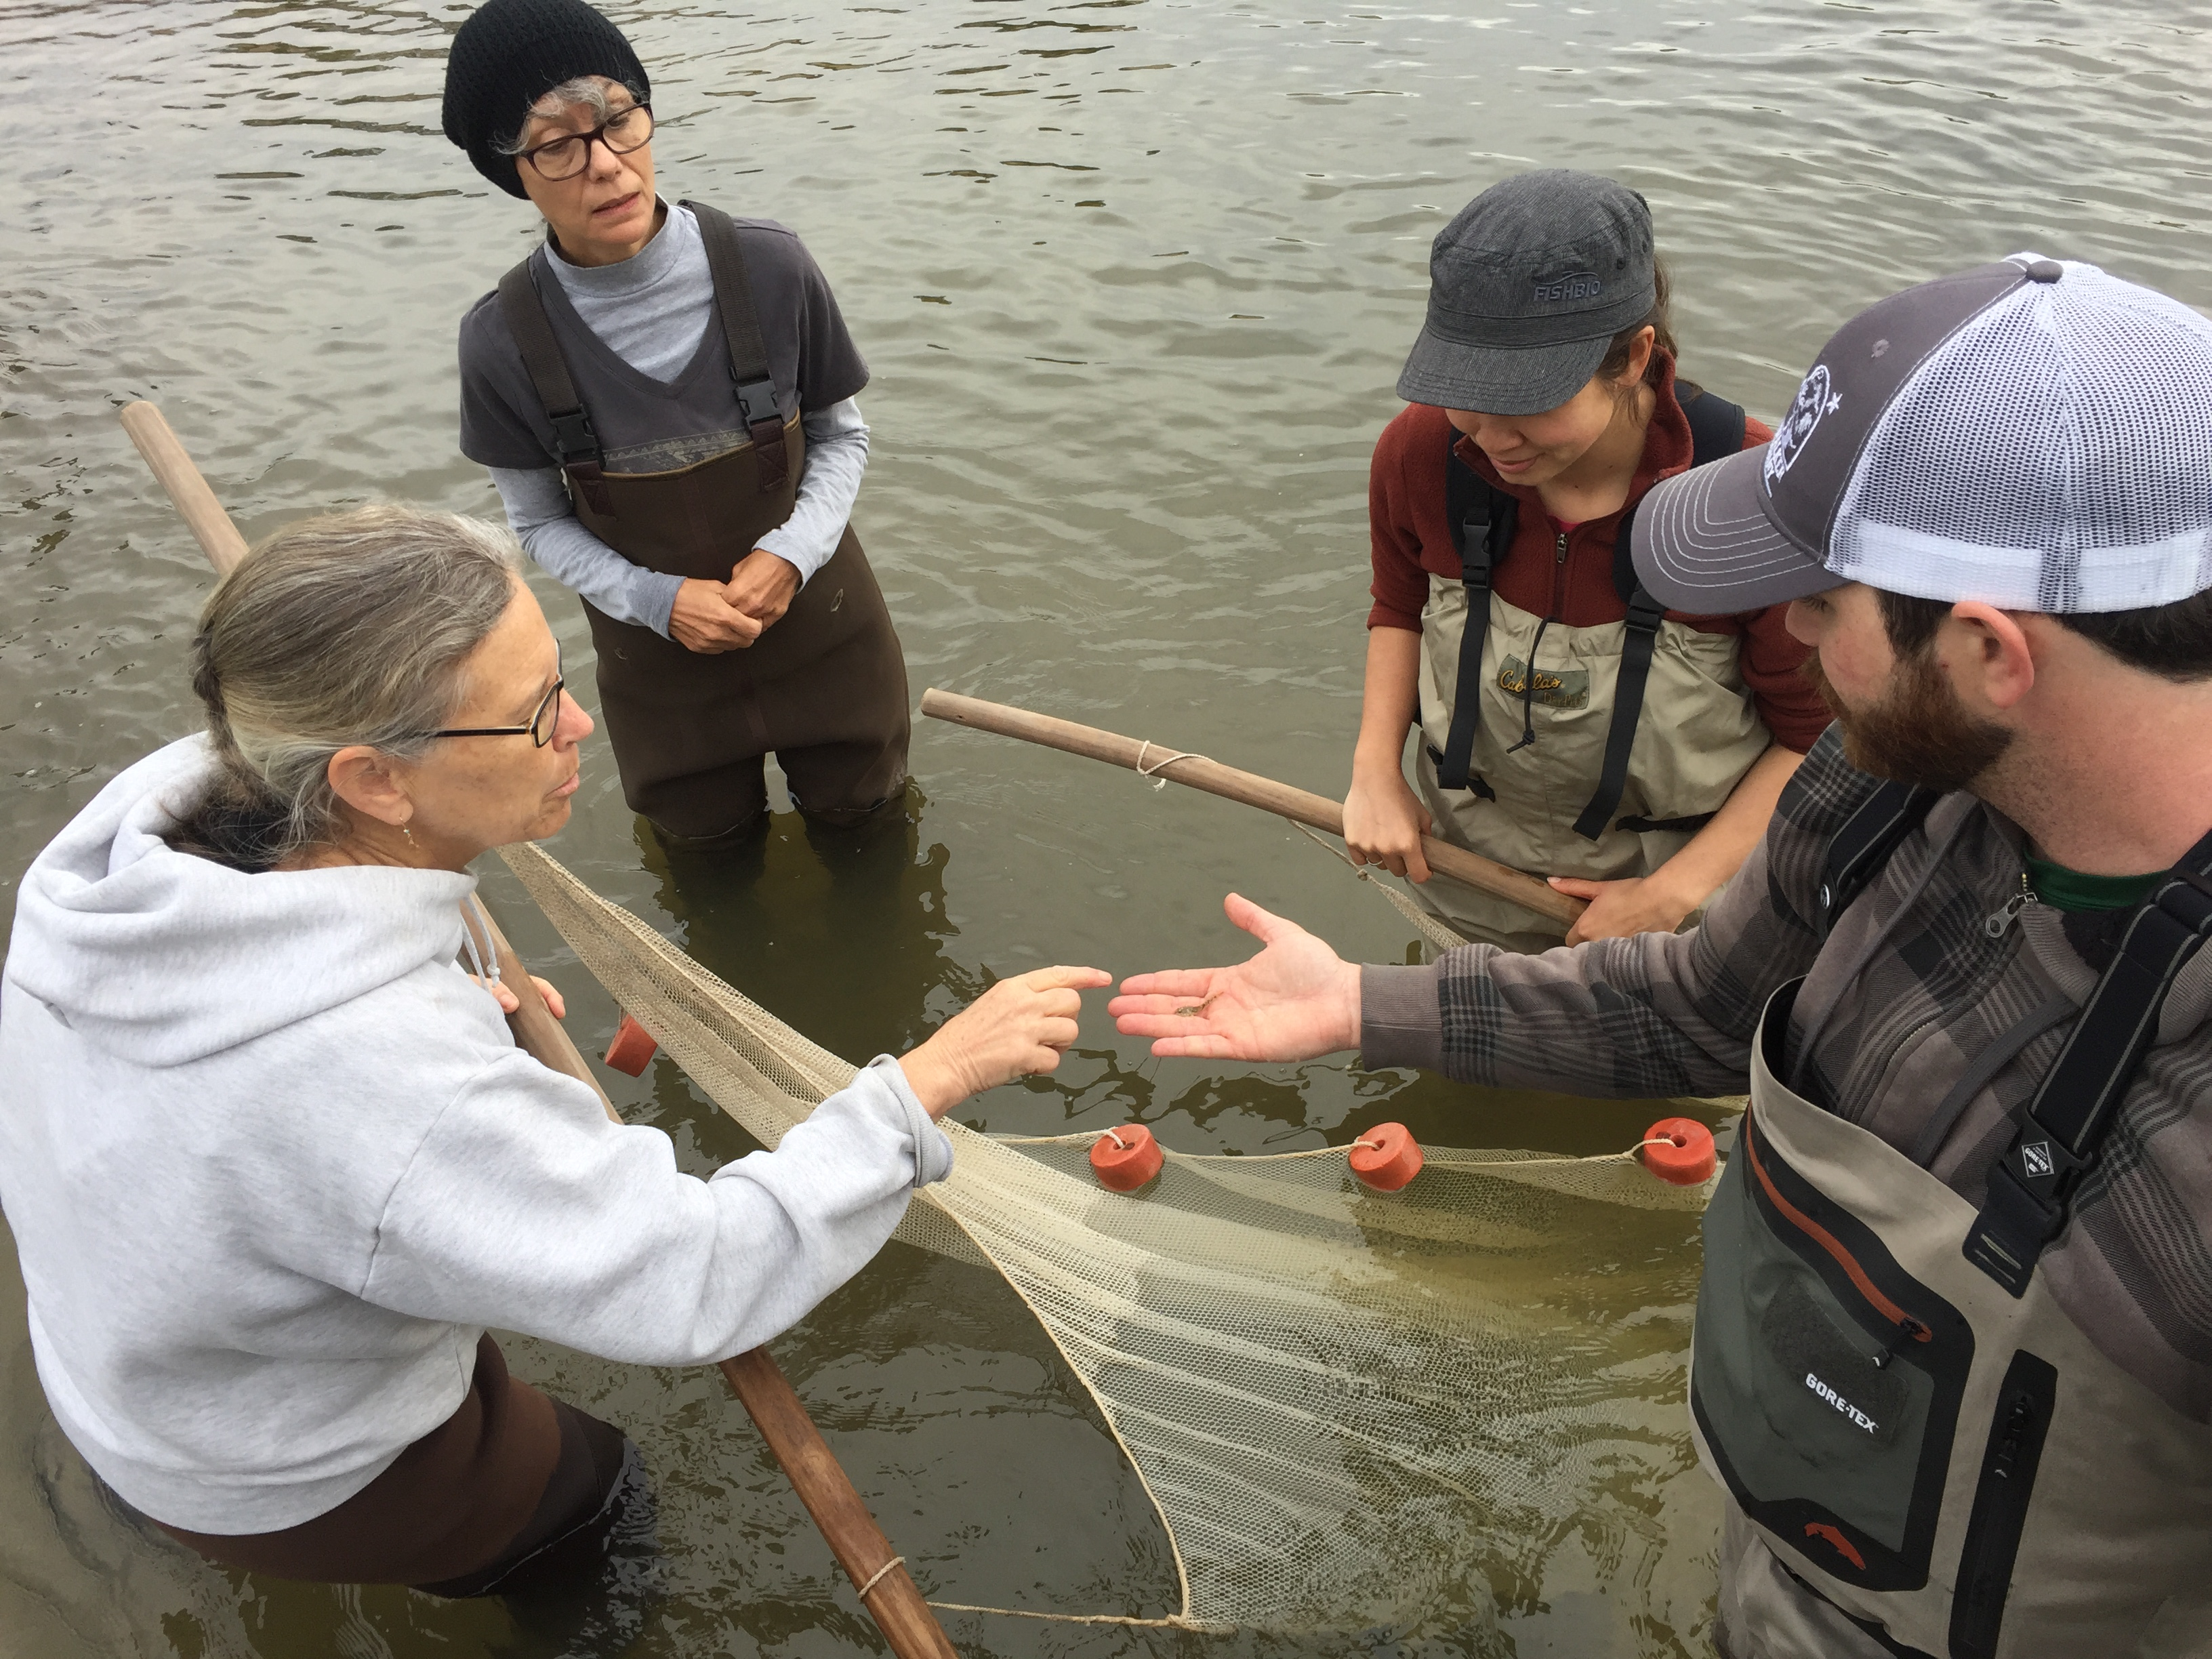 Citizen scientists collecting data in a marine environment